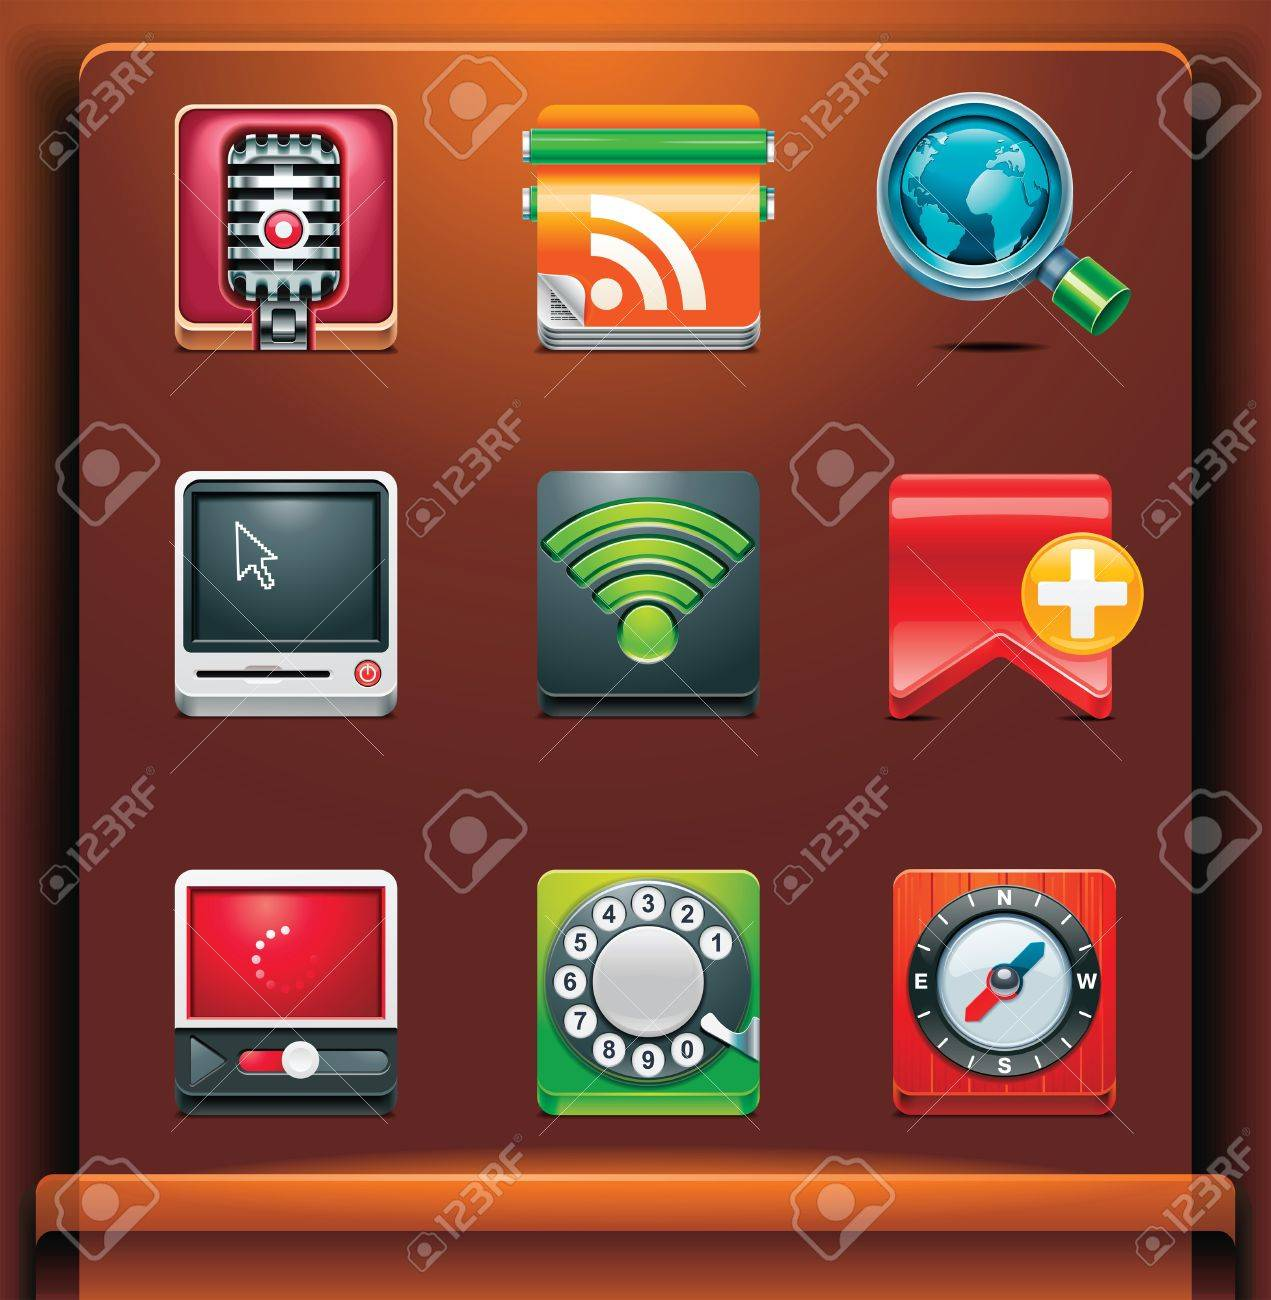 Communication. Mobile devices apps/services icons. Part 3 of 12 Stock Vector - 8413148